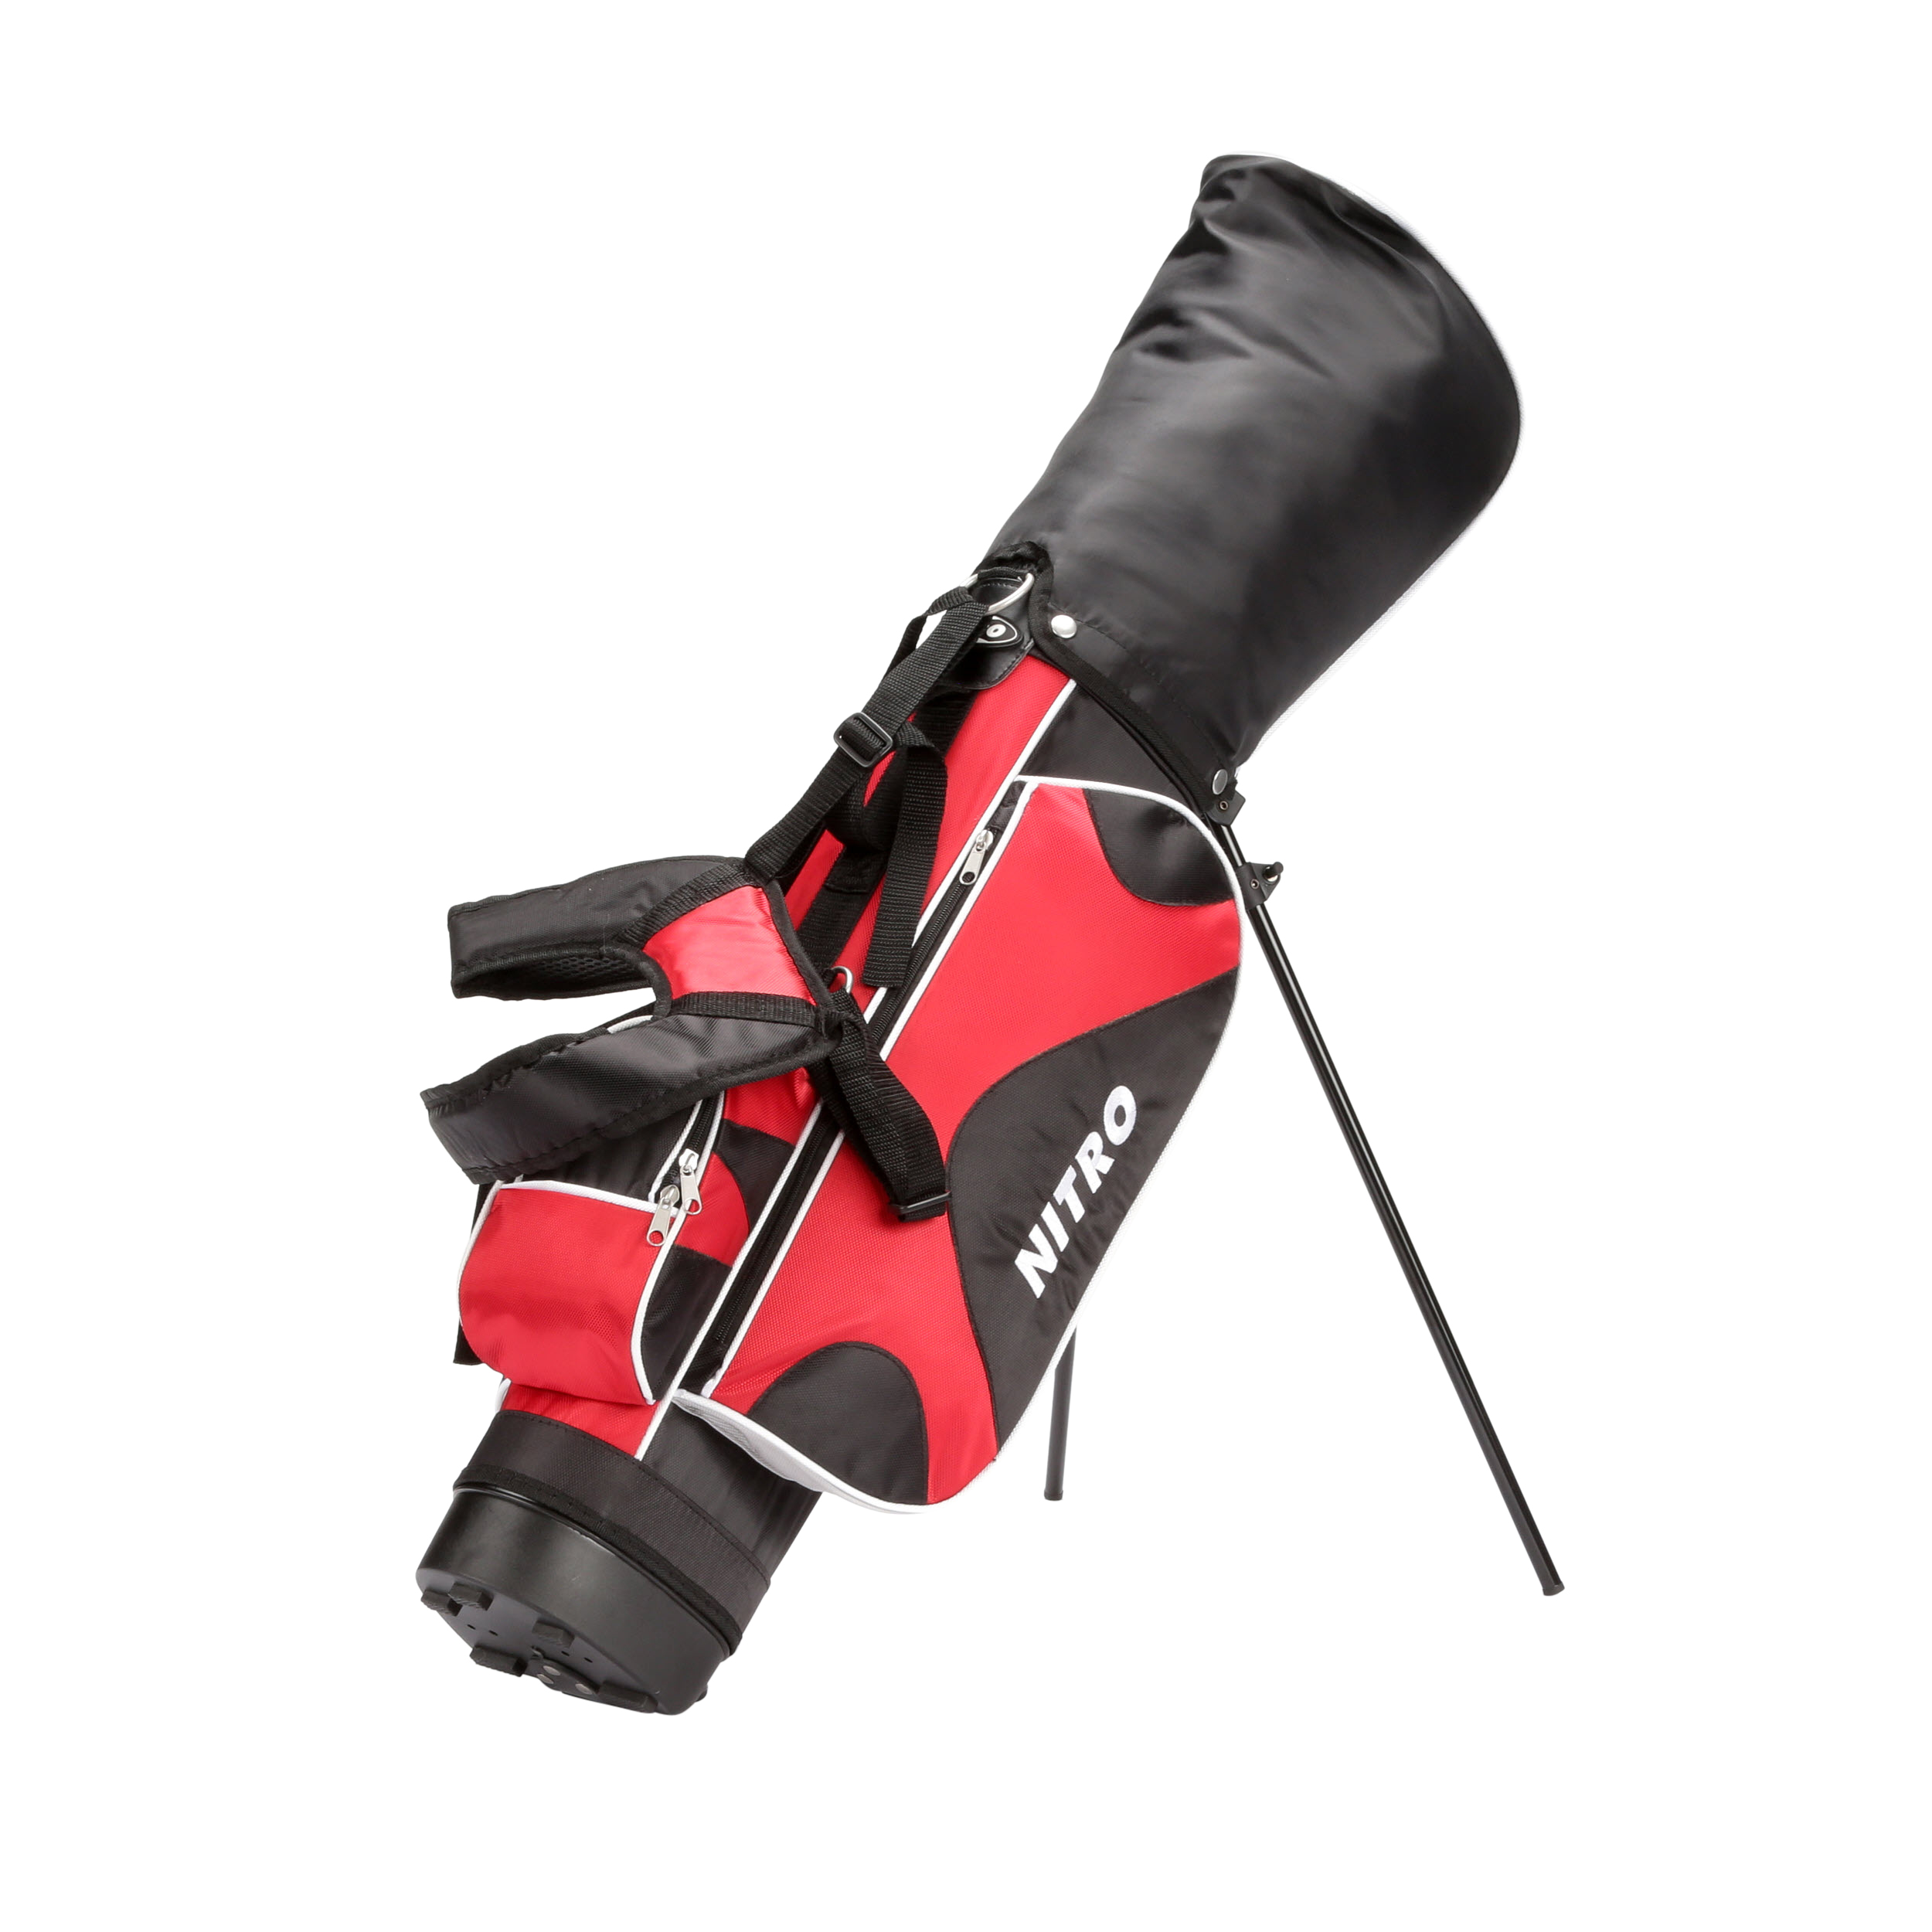 Blaster Junior Golf Set, Black/Red